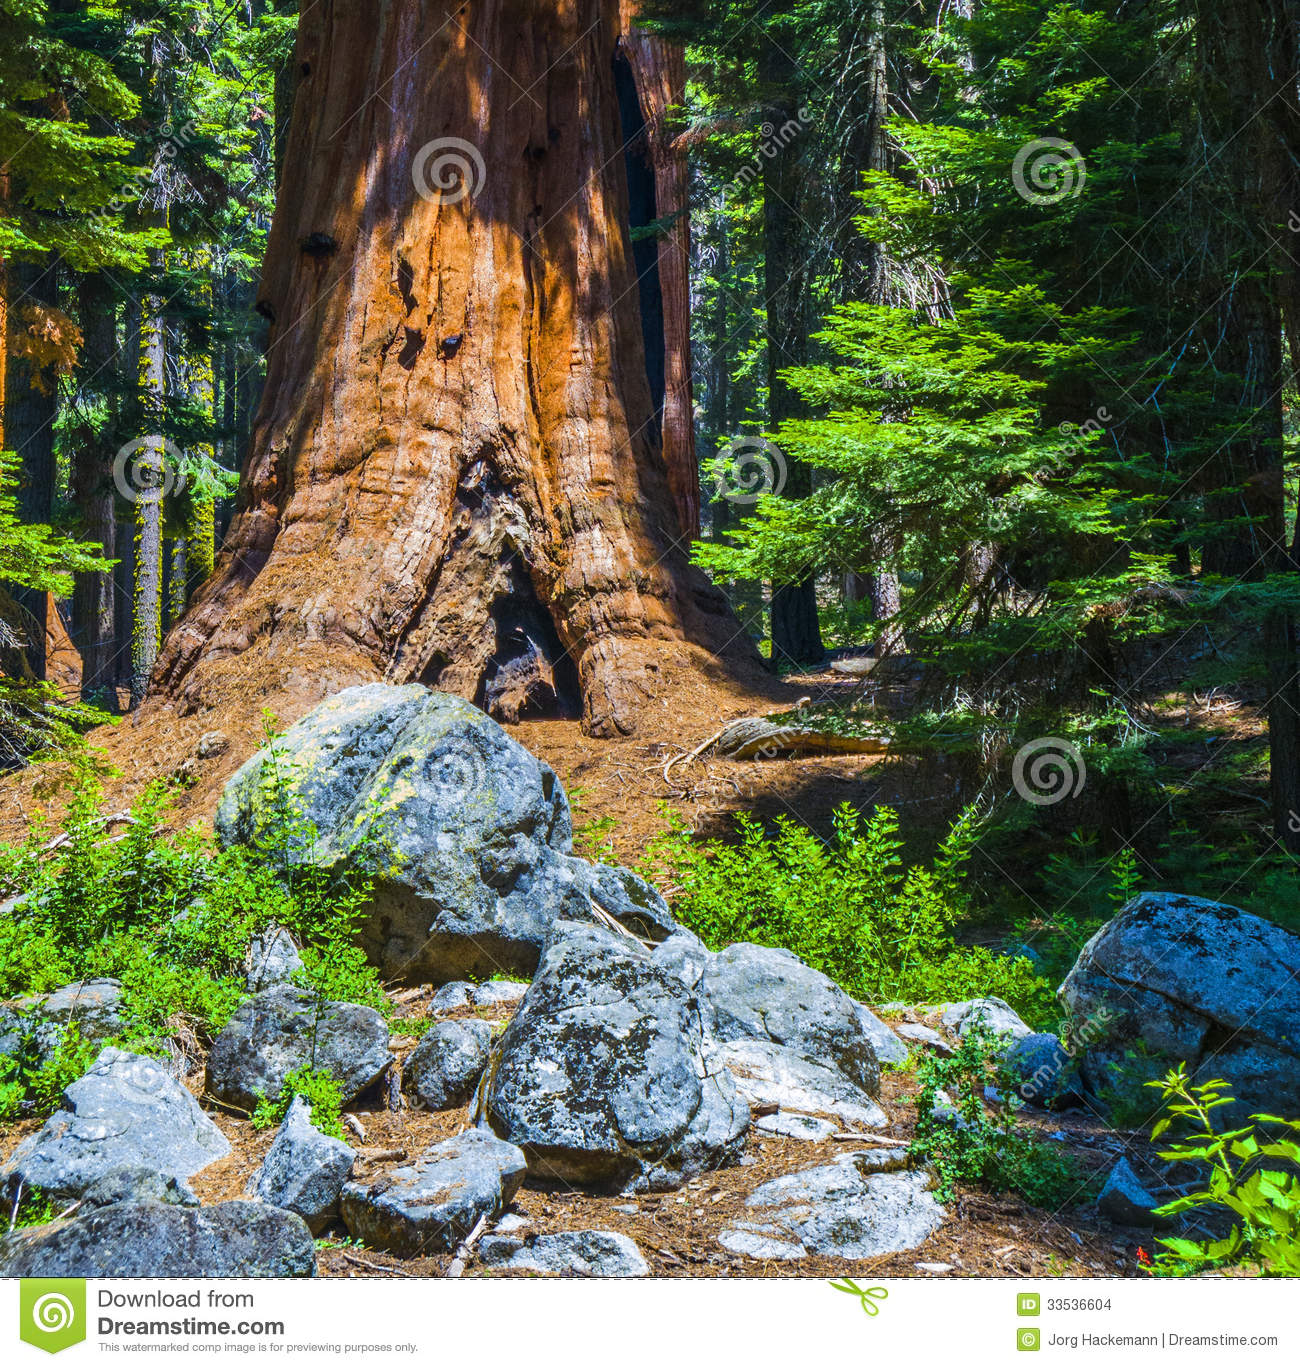 Landscaping With Redwood Trees : Park with old huge sequoia trees like redwoods in beautiful landscape